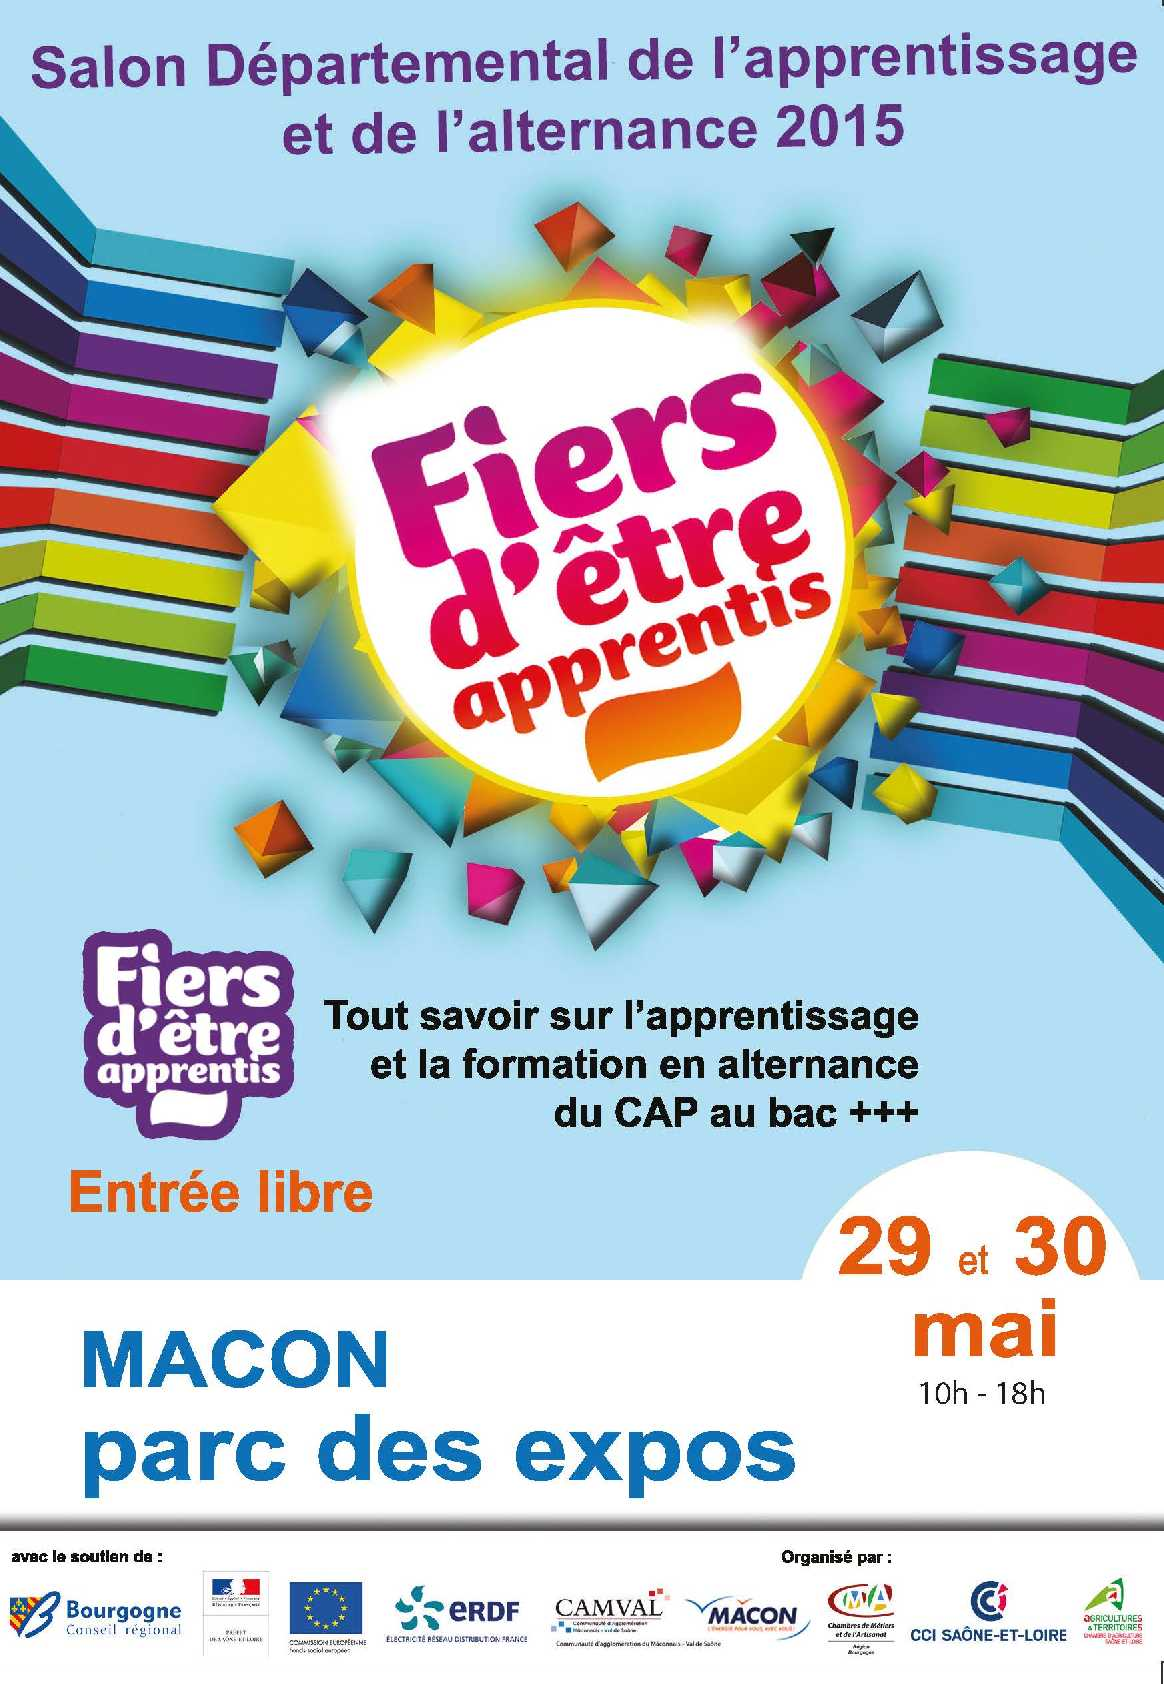 Salon De L Alternance Salons De L Alternance Et De L Apprentissage Capeb